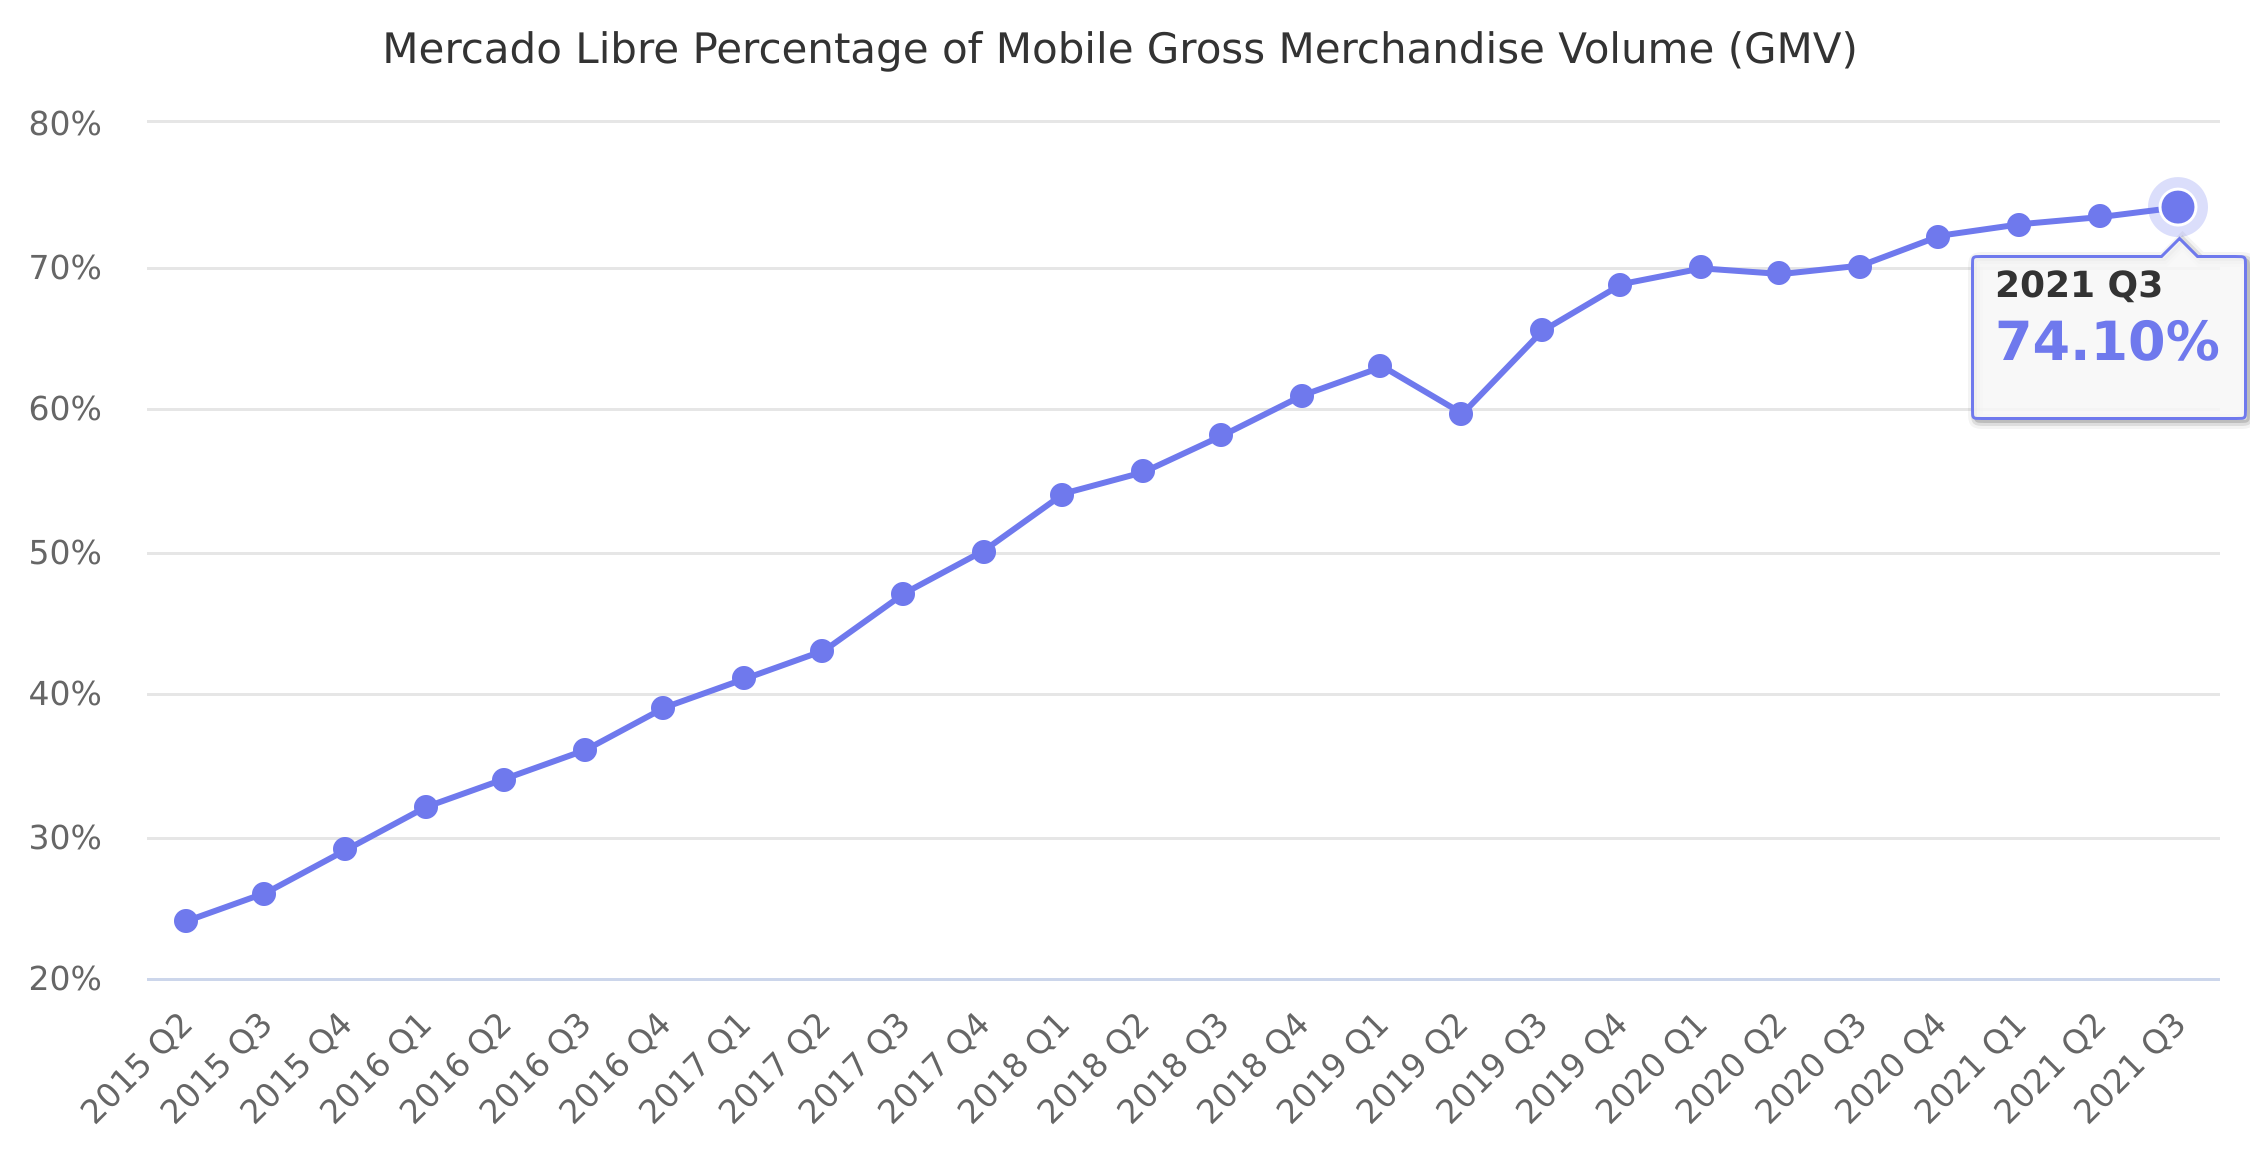 Mercado Libre Percentage of Mobile Gross Merchandise Volume (GMV) 2015-2019